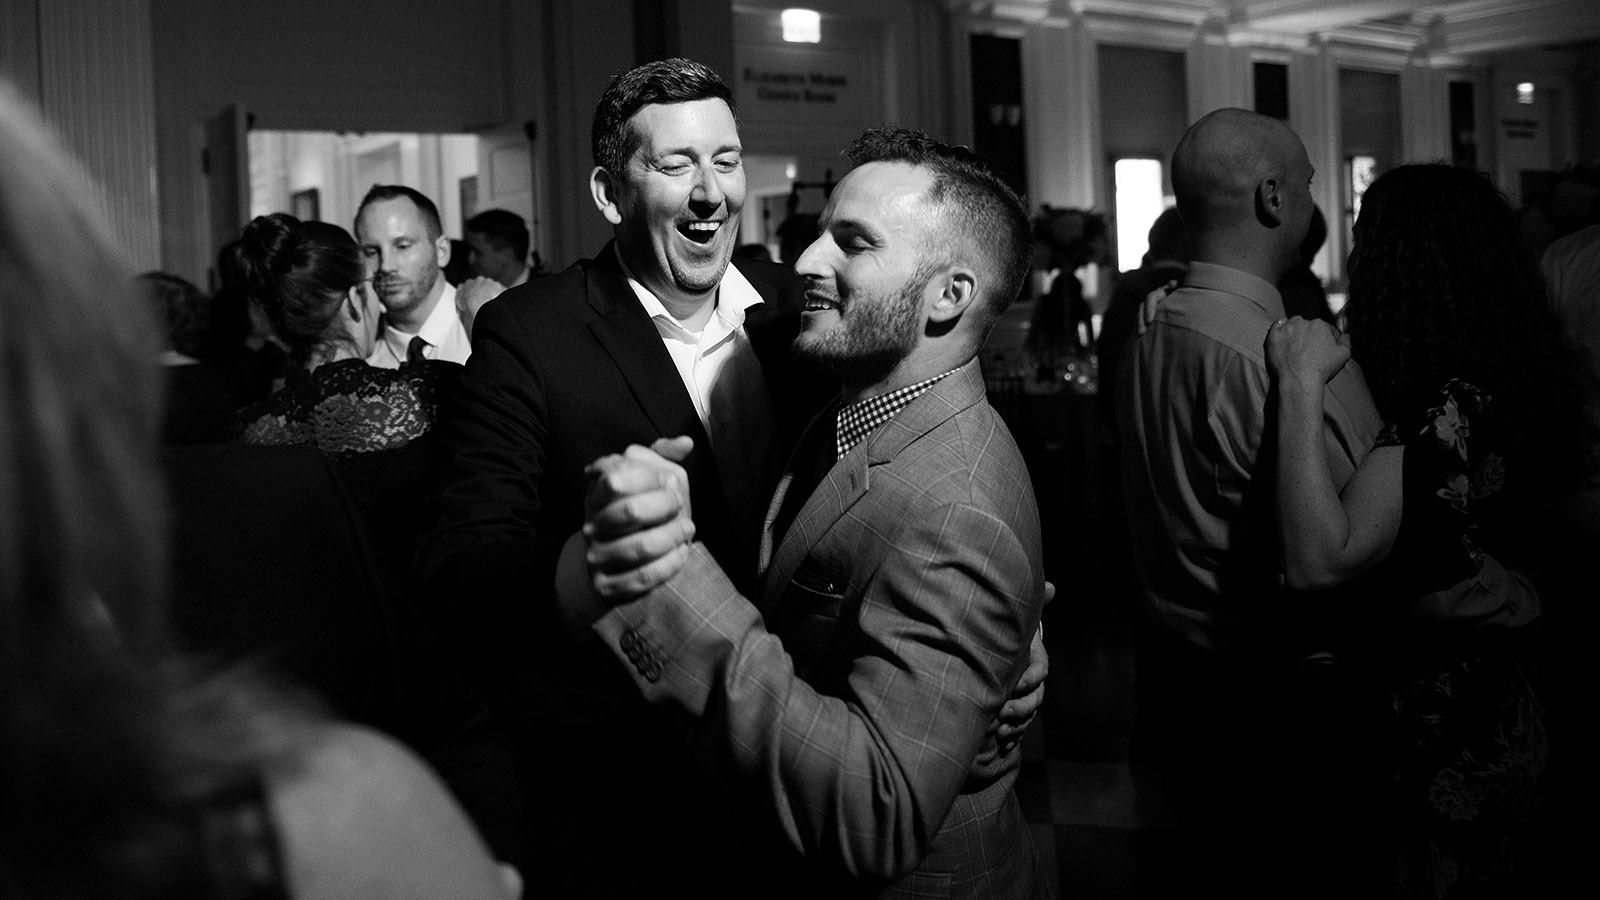 Wedding Dancing Black White Men